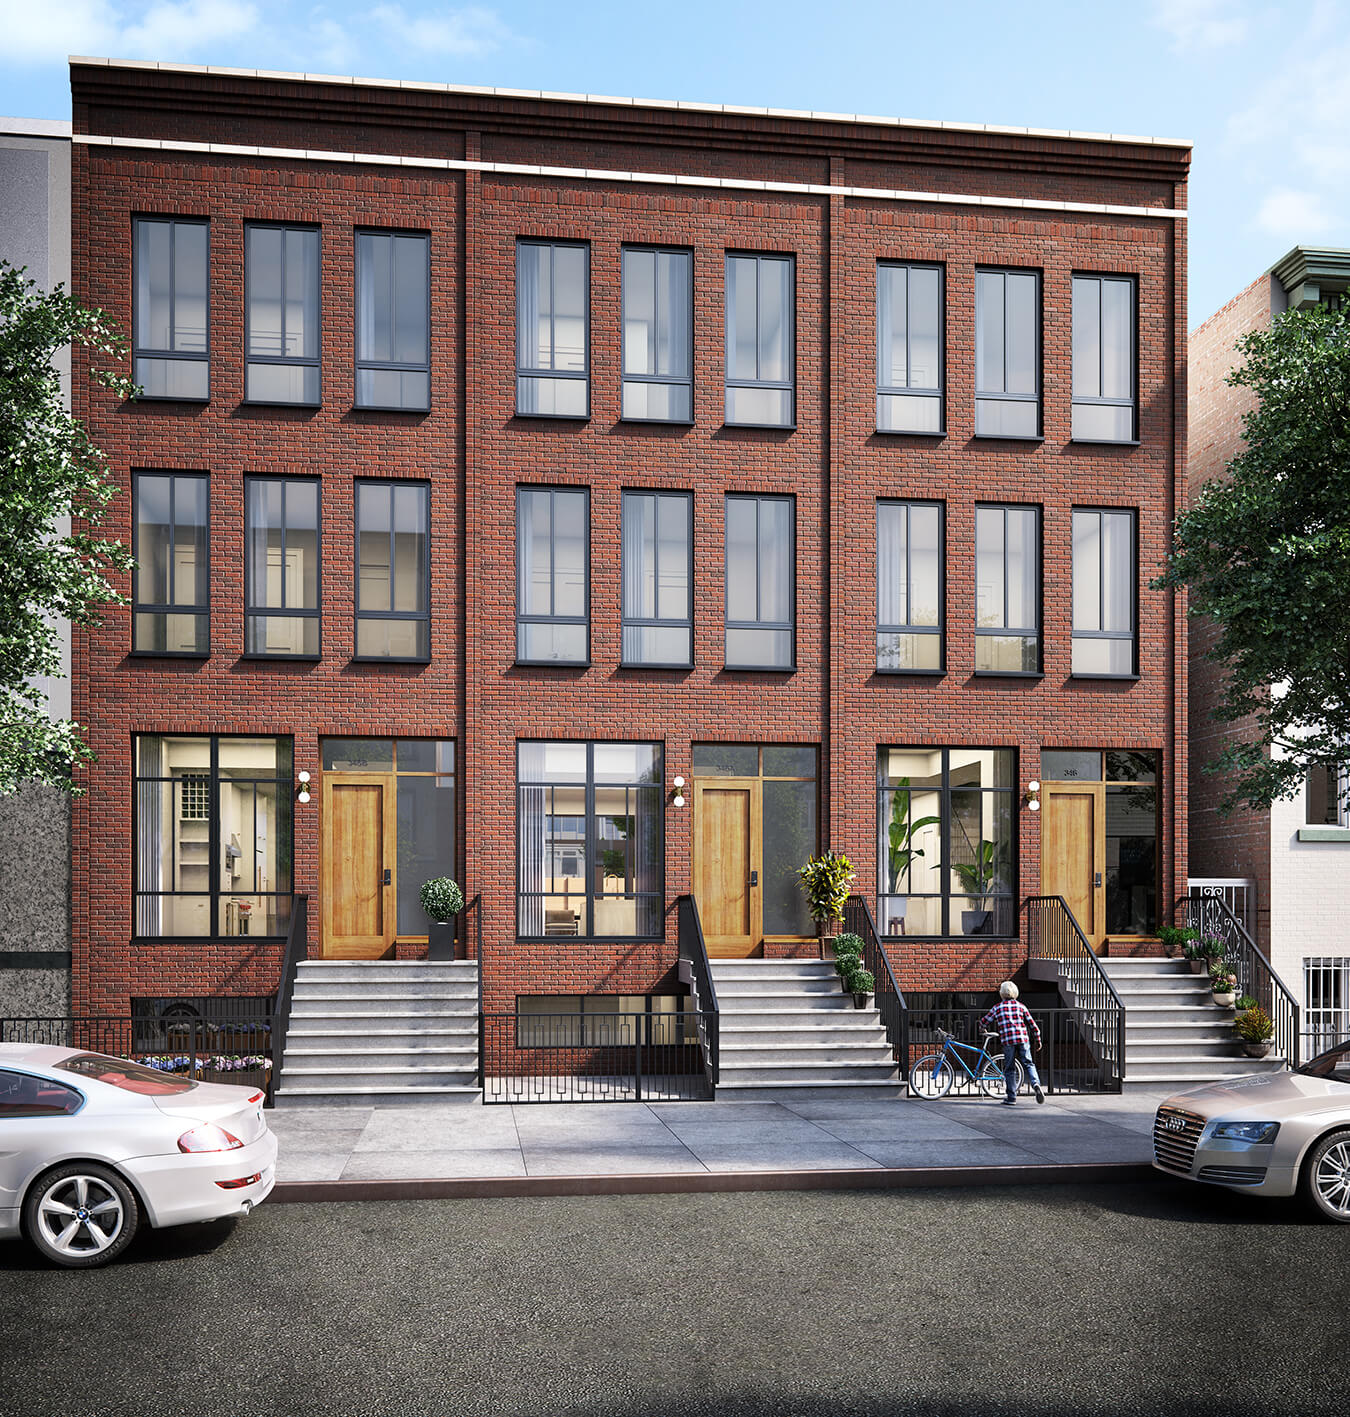 brooklyn homes for sale in park slope at 346 13th street